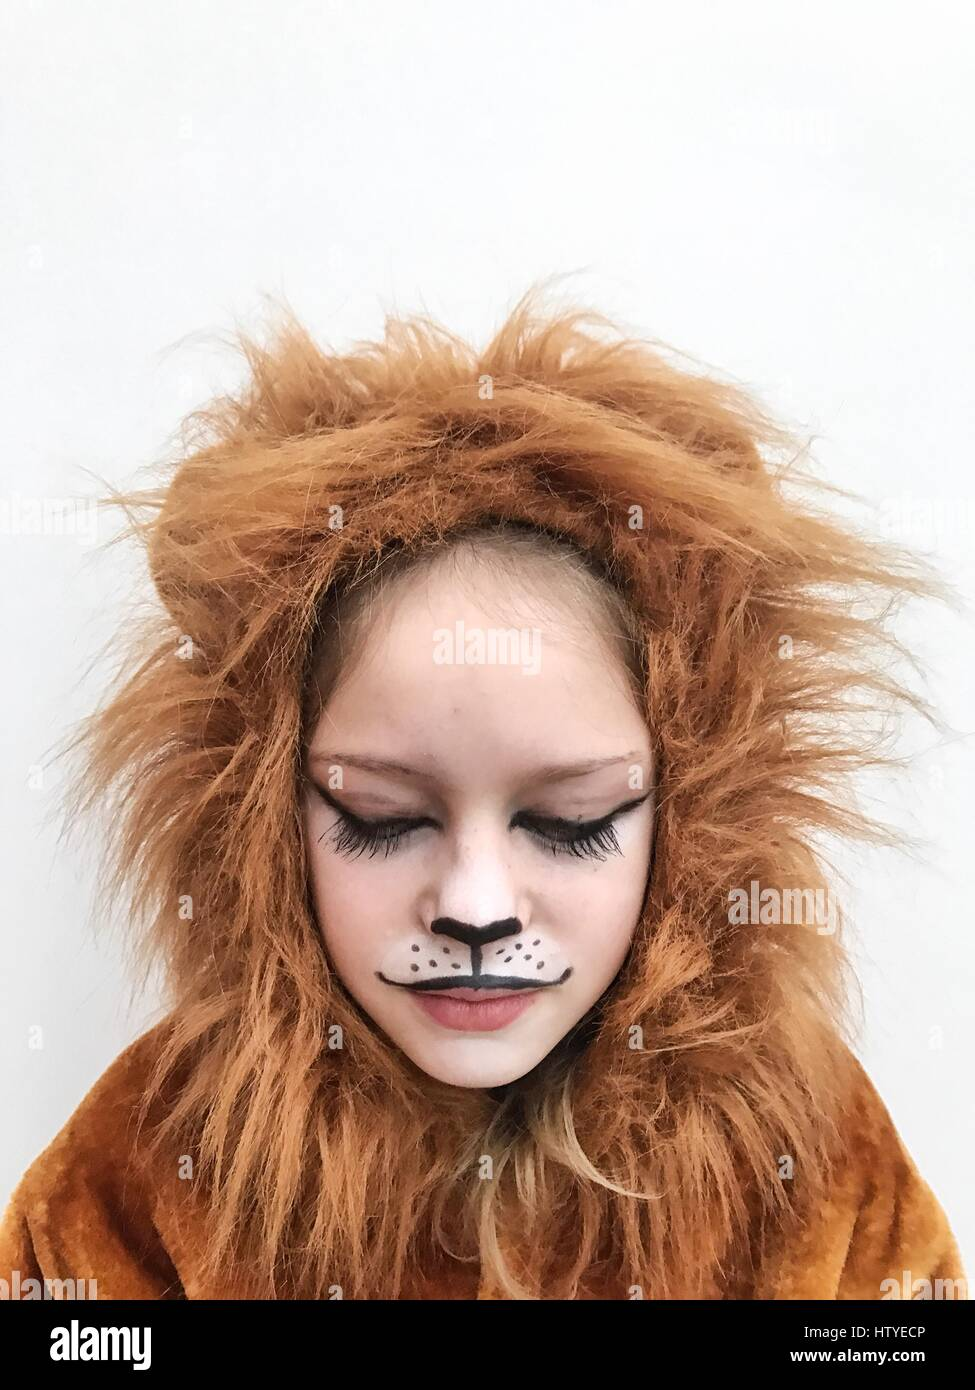 Girl wearing a lion costume - Stock Image